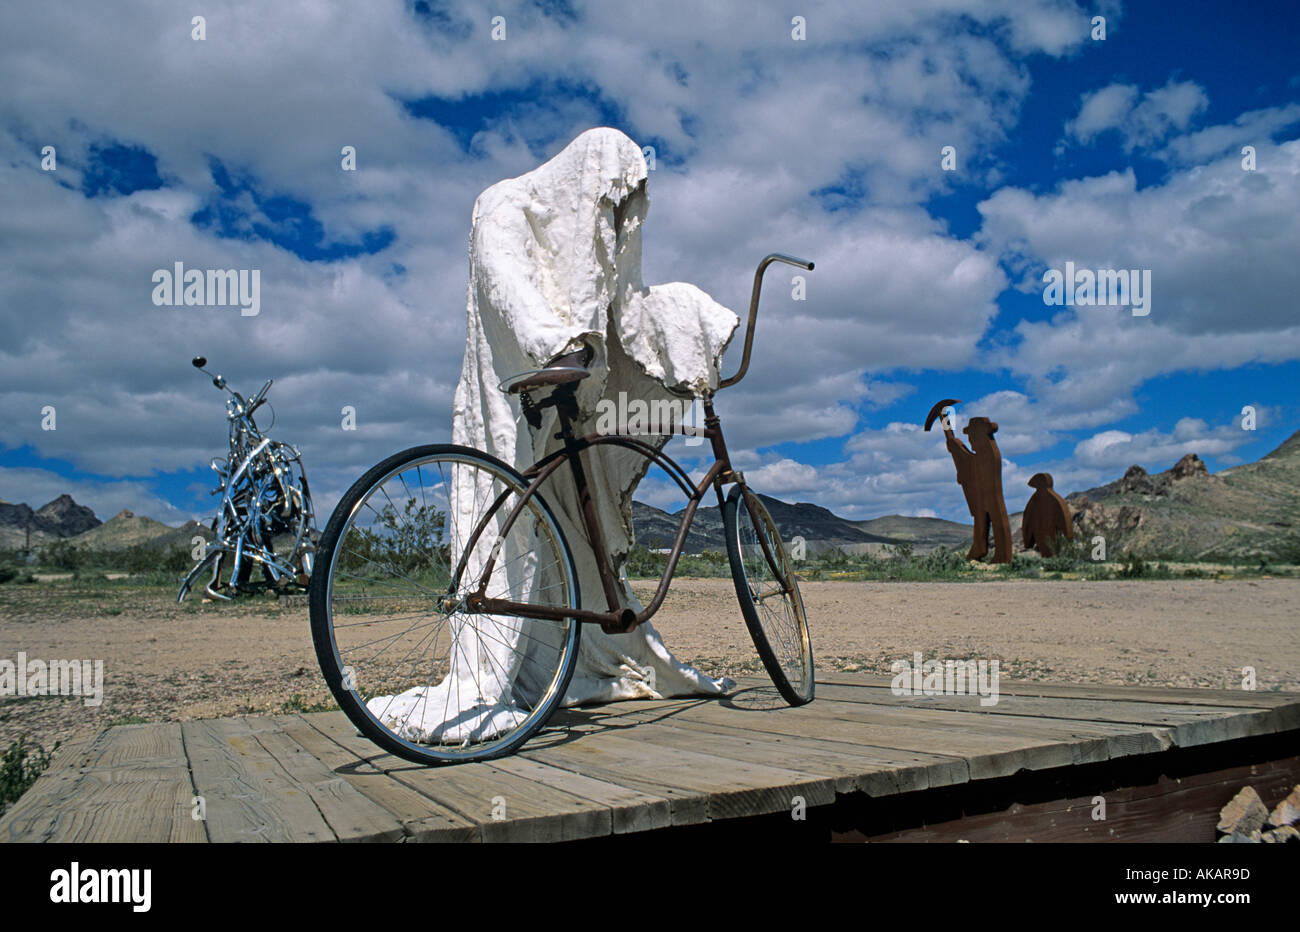 Sculpture of a ghost about to ride a bicycle near Rhyolite, a ghost town in Nevada USA - Stock Image